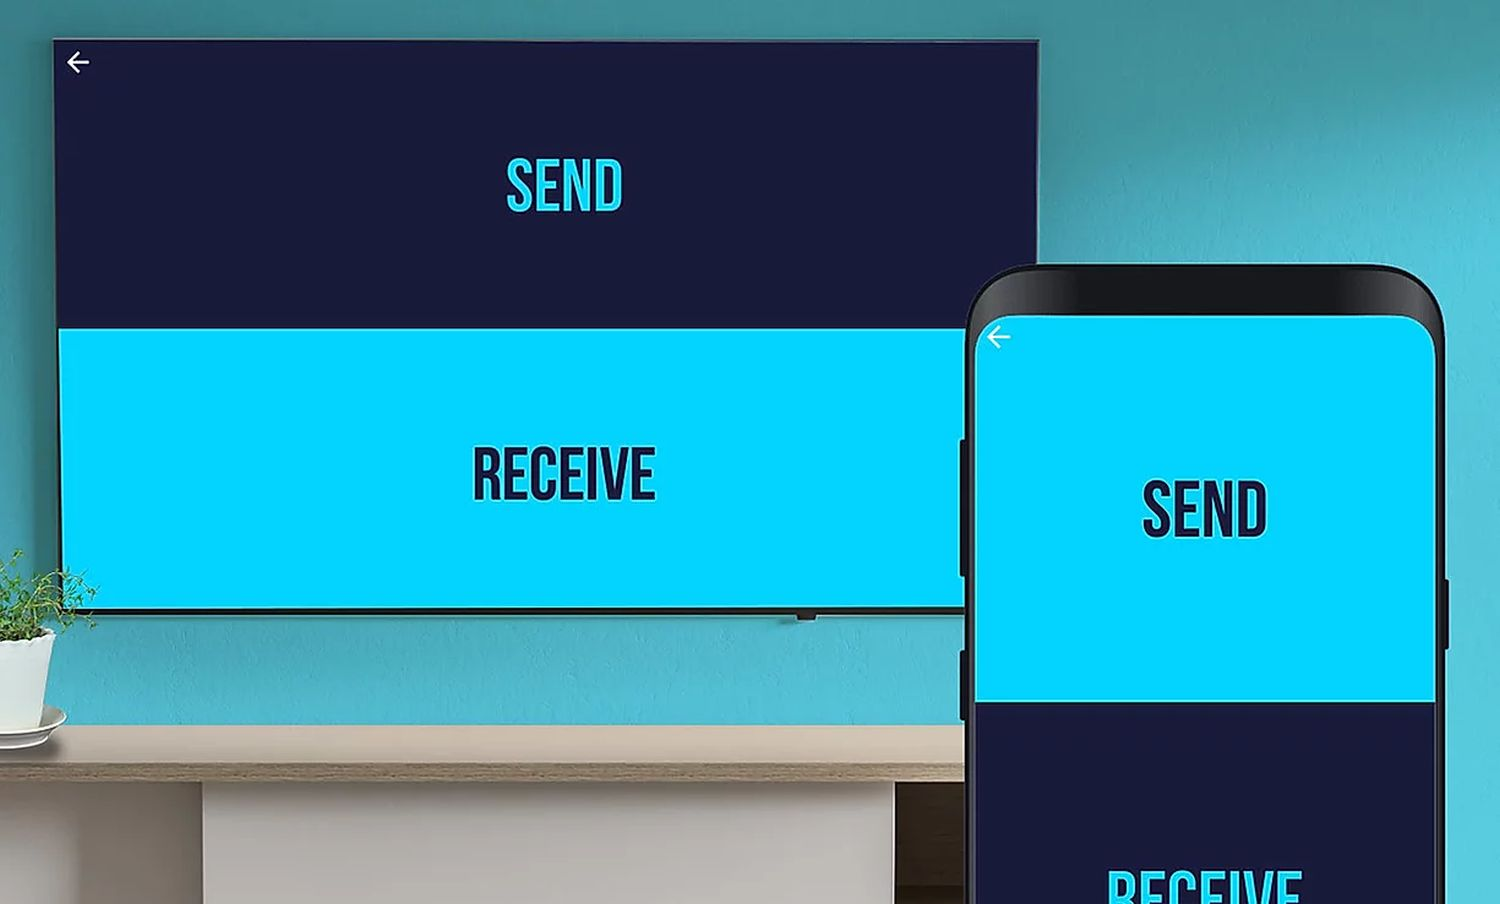 android tv send files to tv send receive